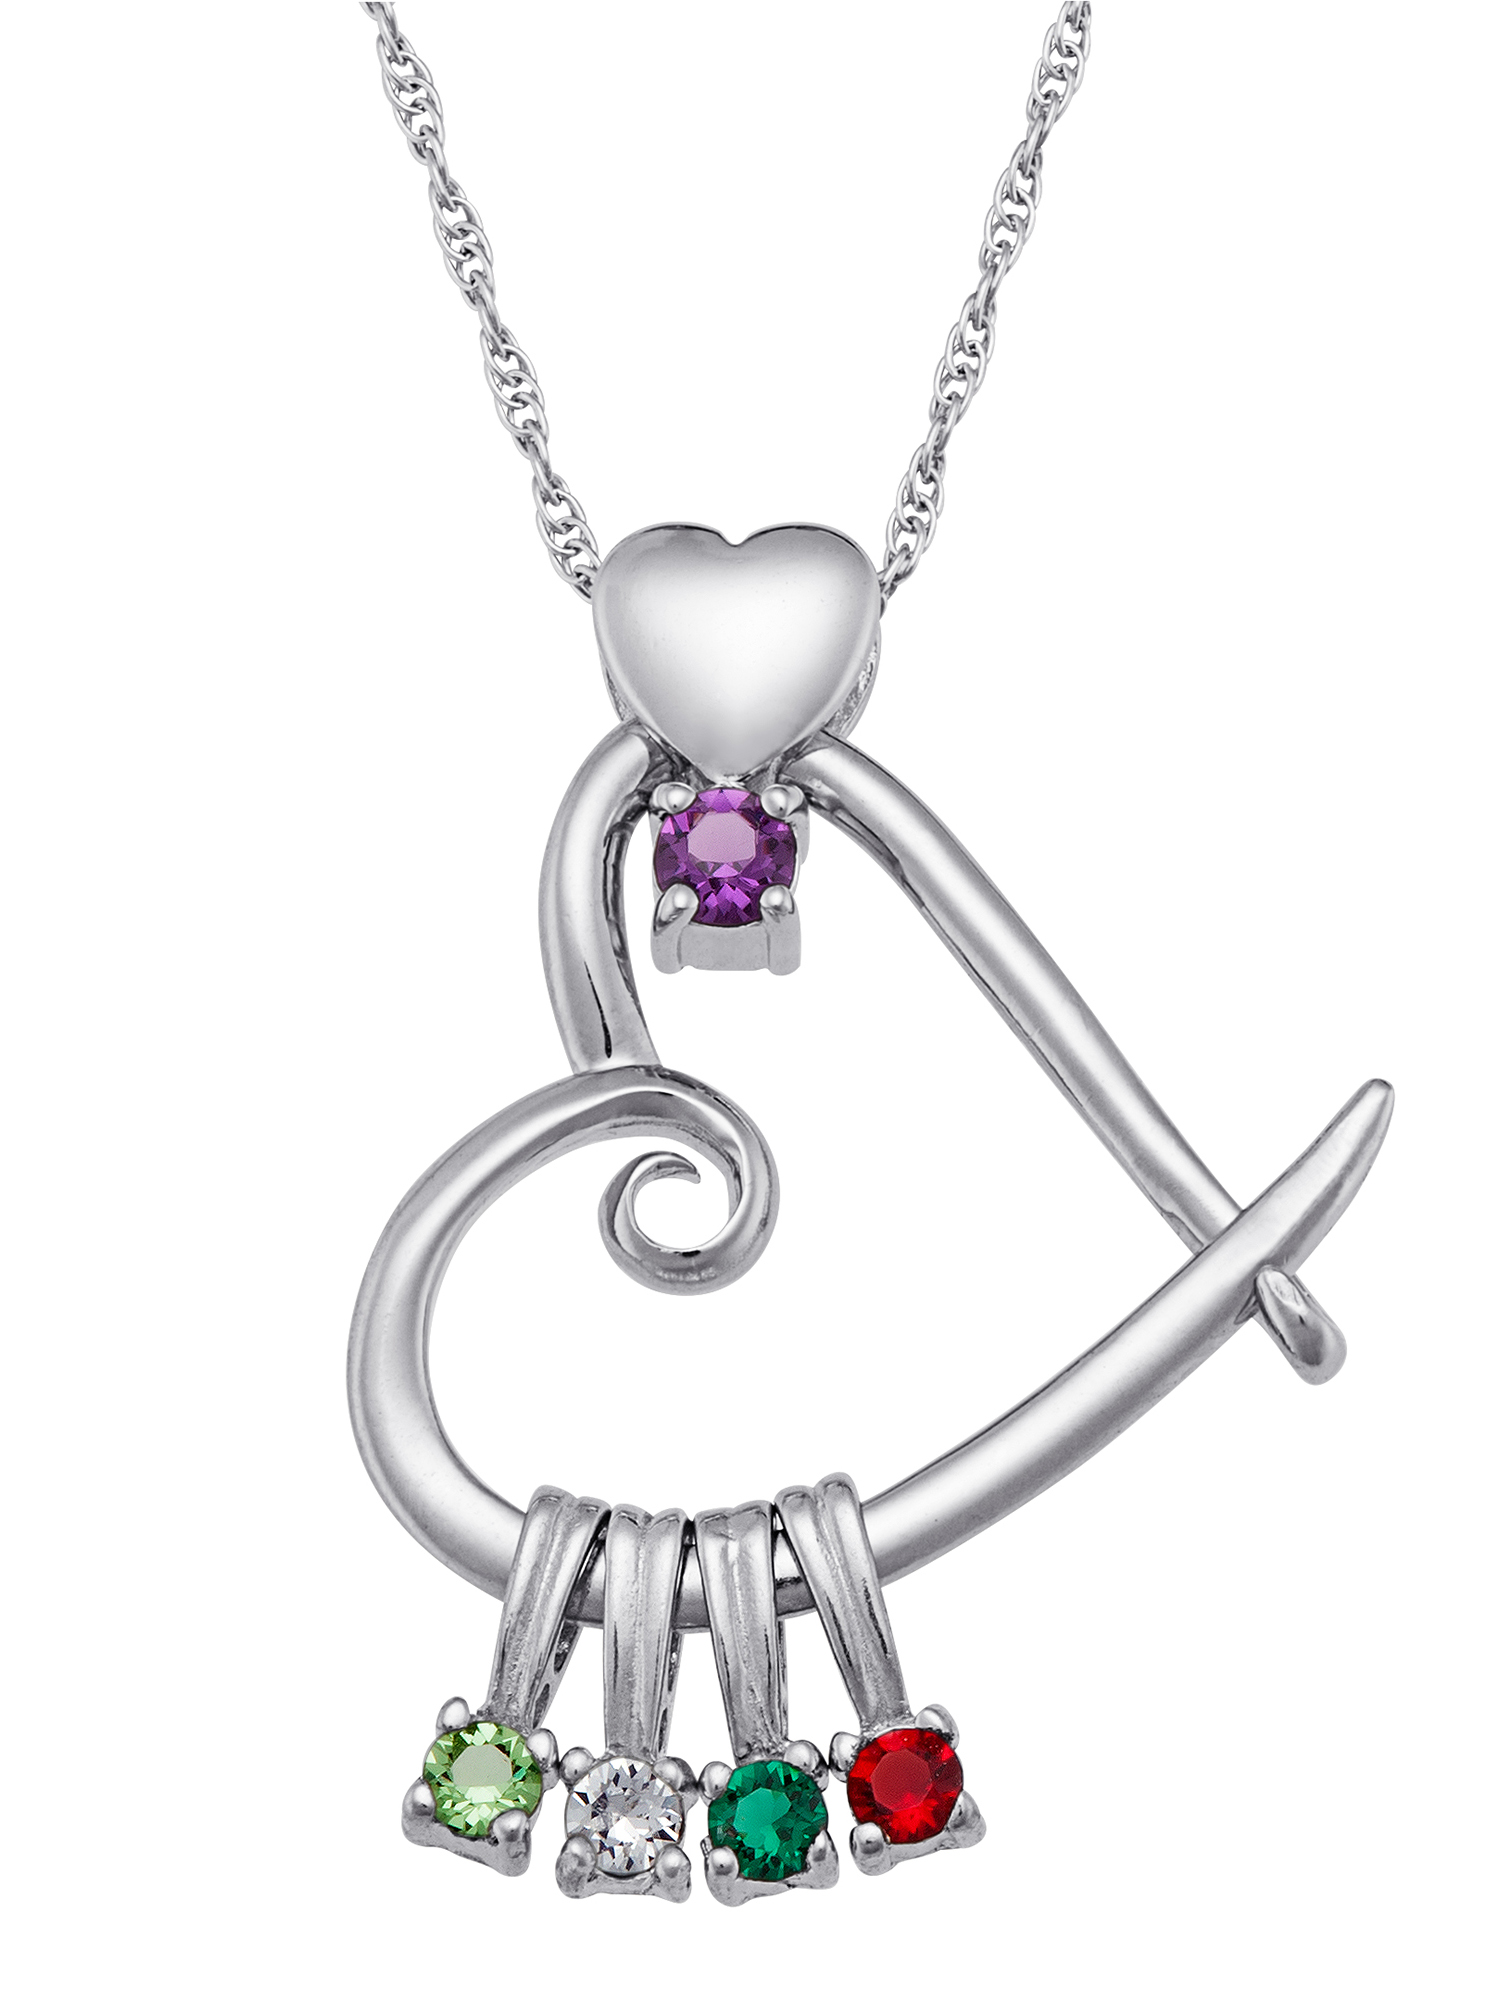 forever grandkid the is love necklace birthstone a dnor listing nana zoom fullxfull il and between granddaughter